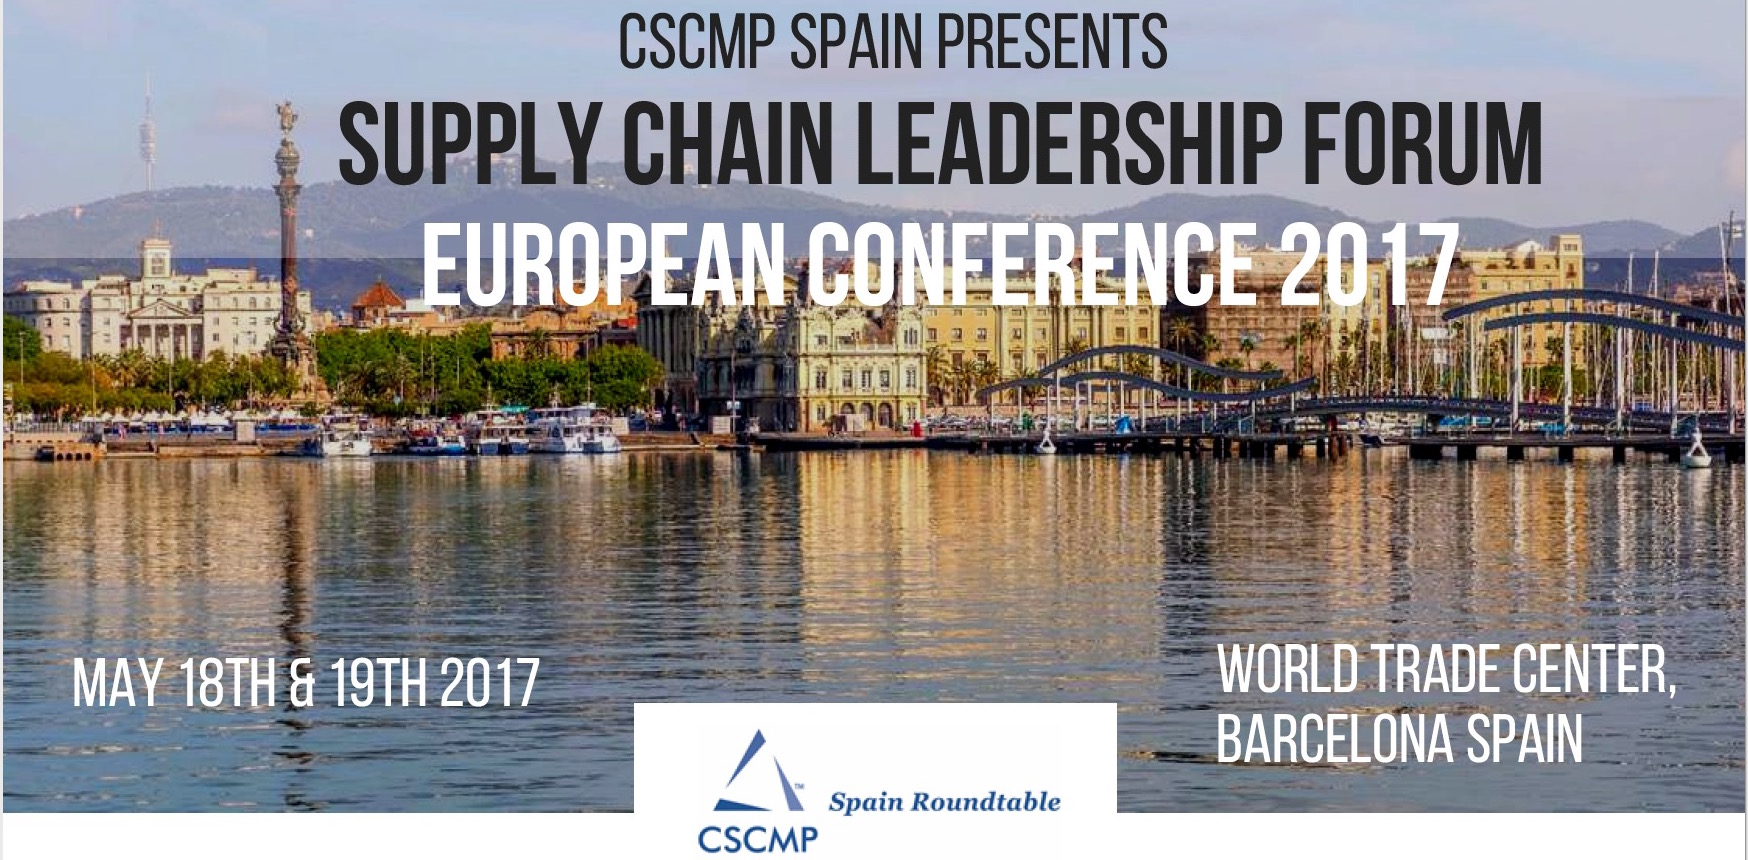 Supply Chain Leadership Forum European Conference 2017